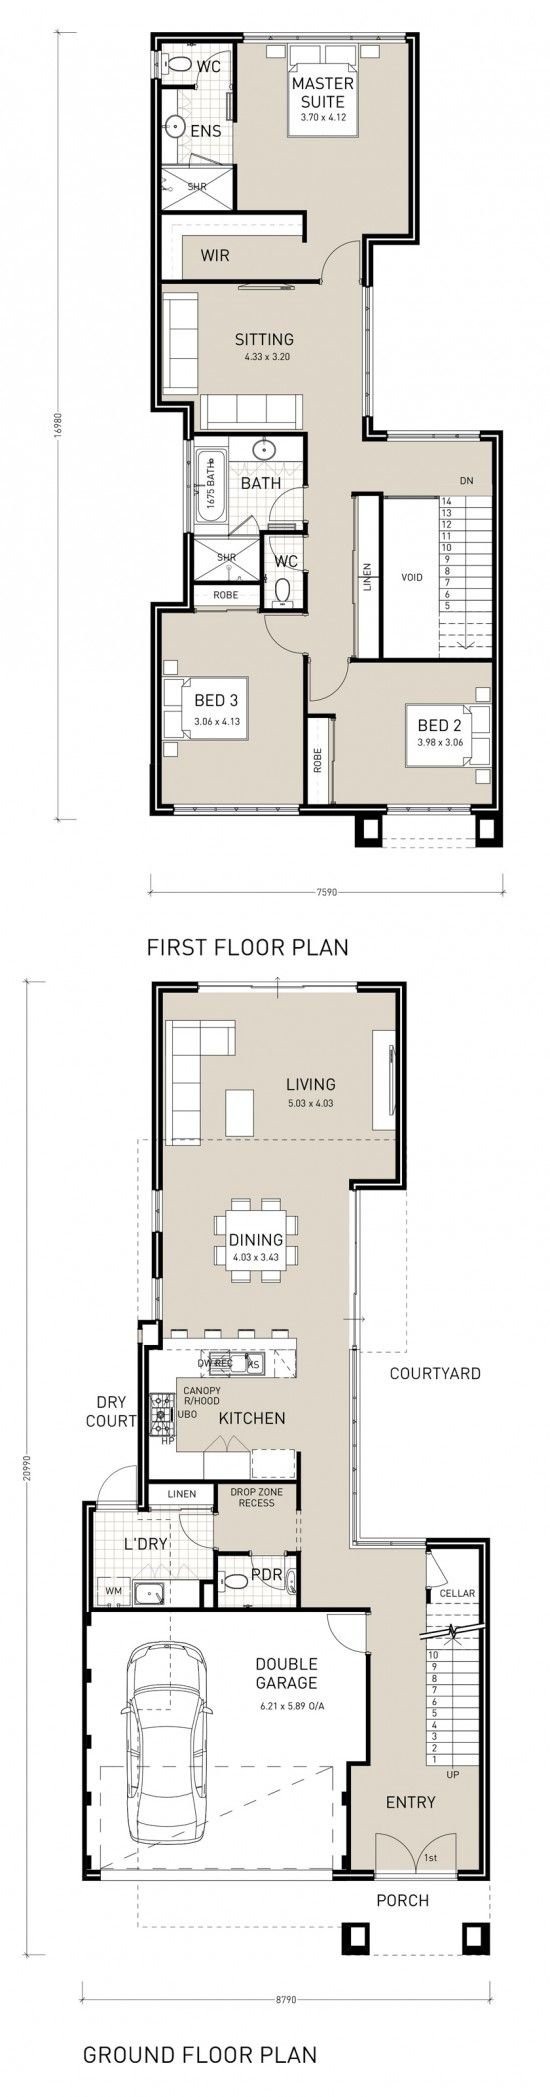 18 best images about narrow block plans on pinterest for Block home plans